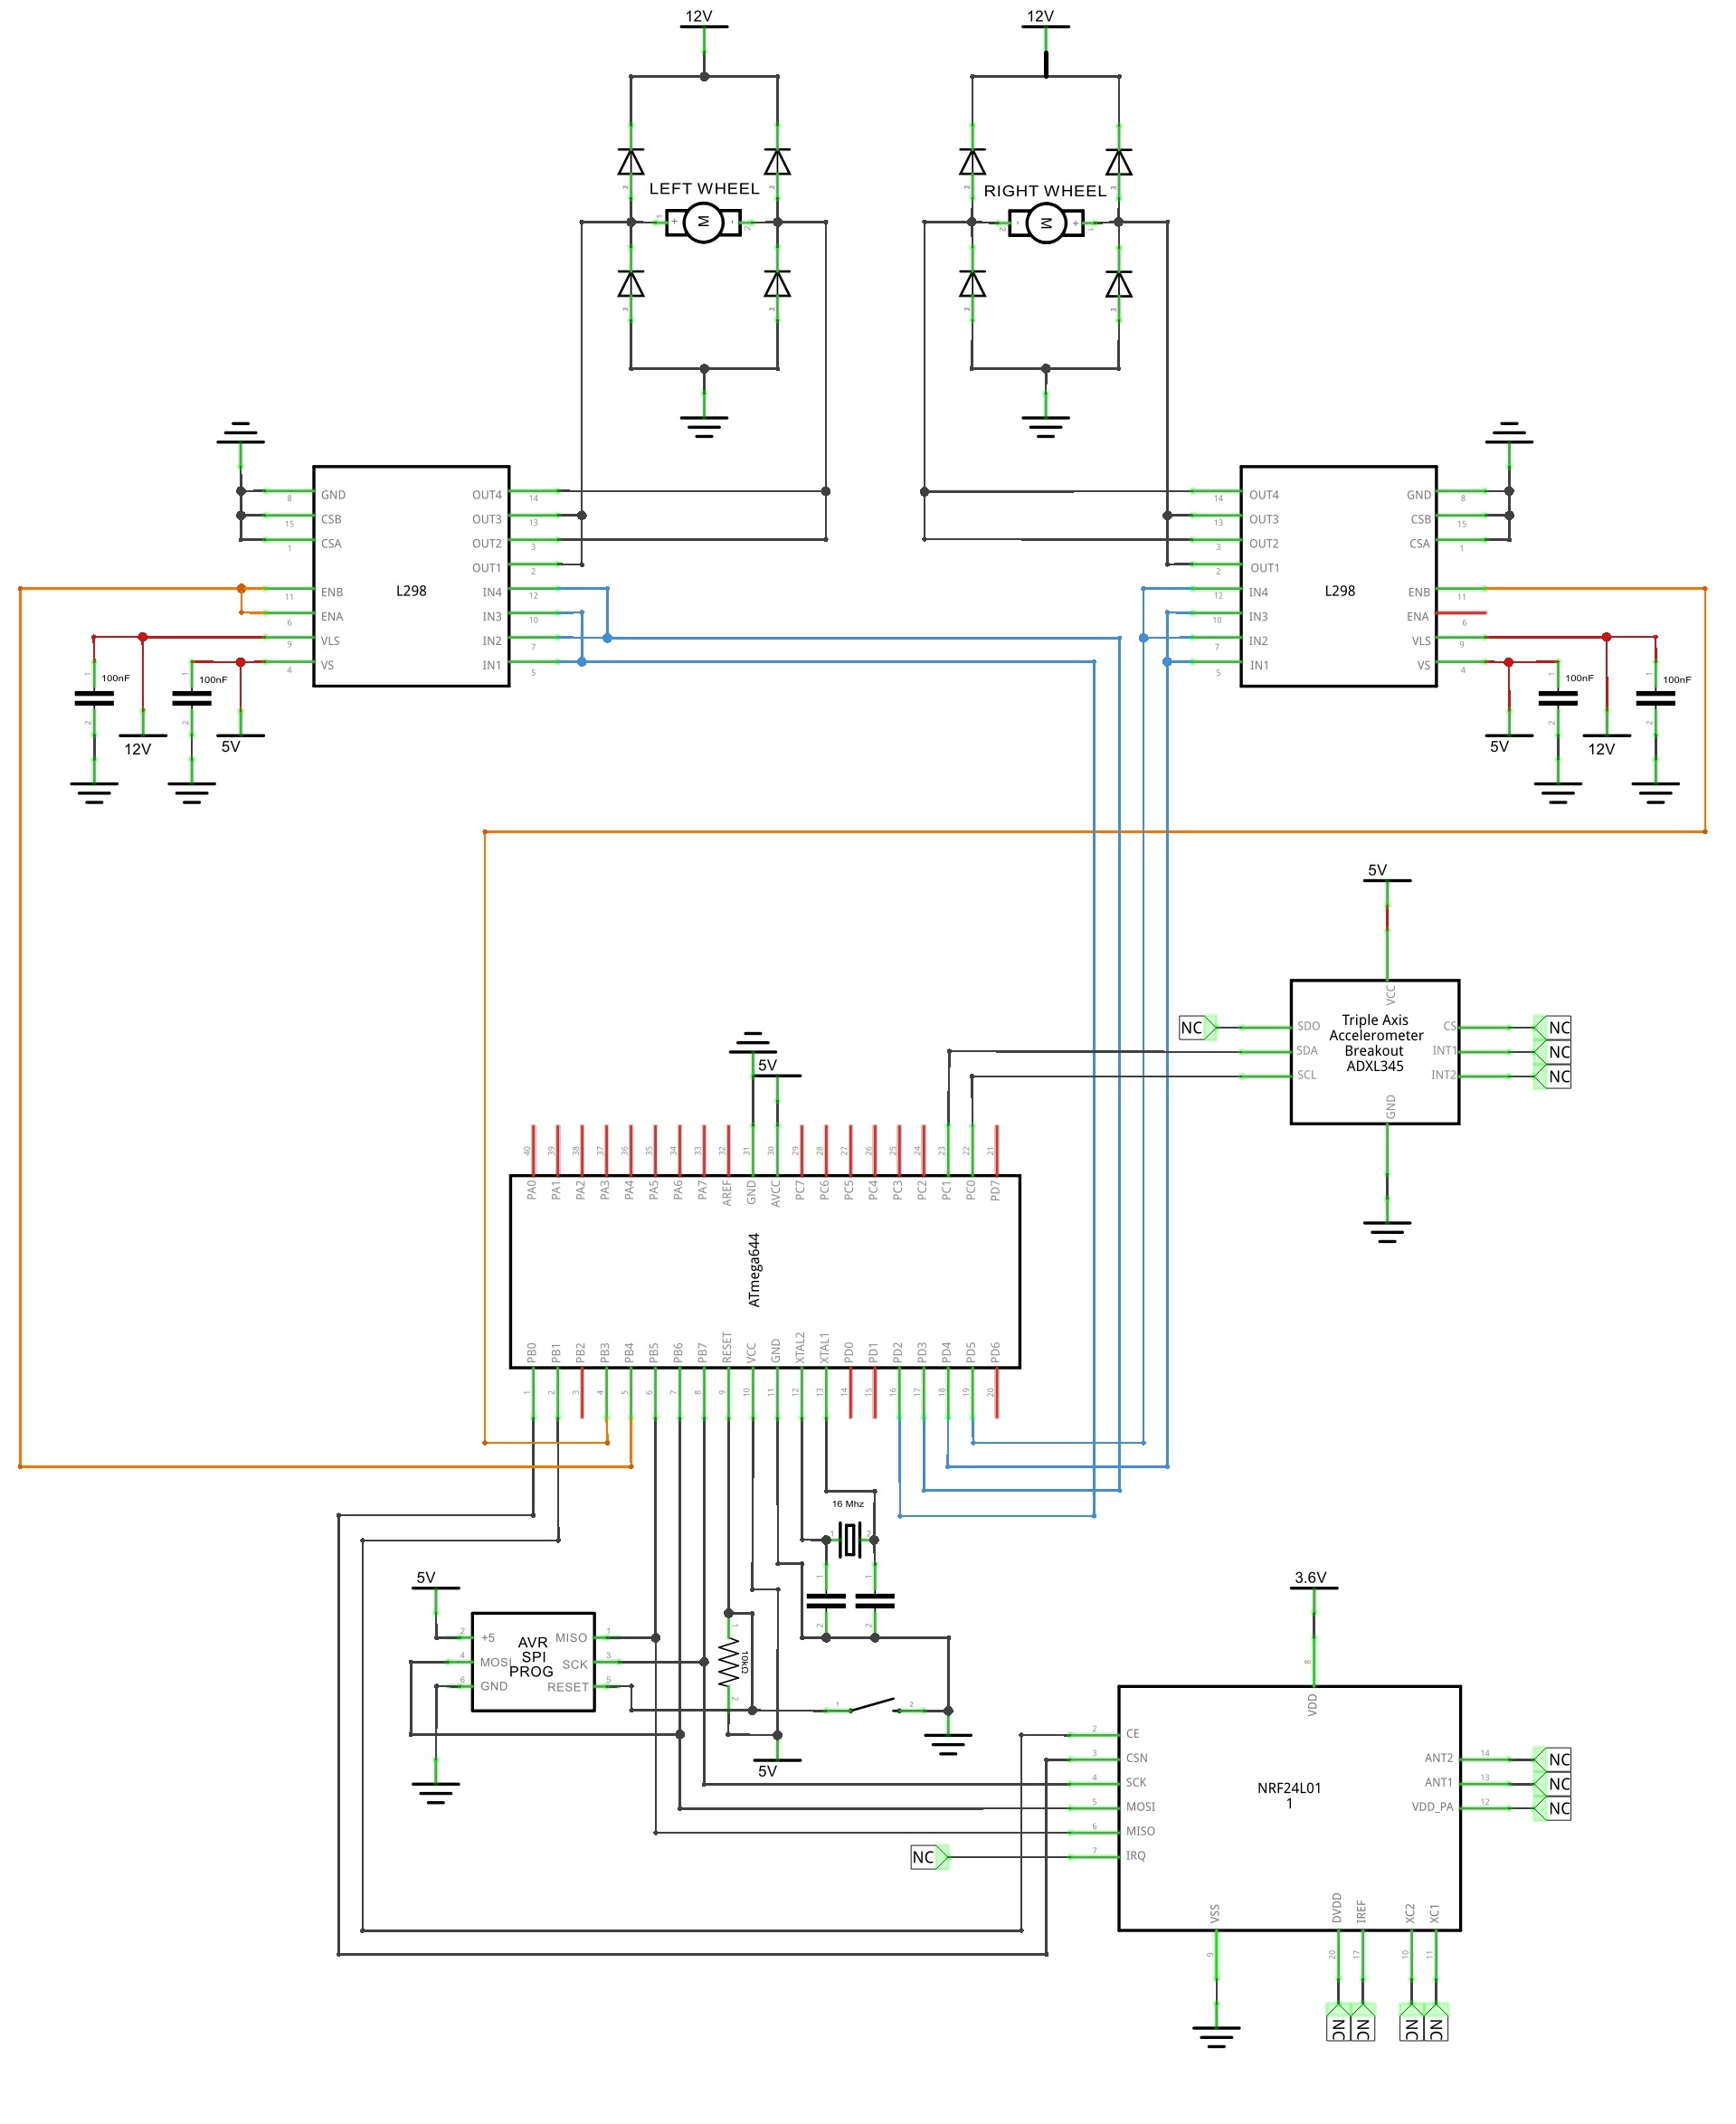 scooter controller schematic diagram plant cell membrane wiring elsavadorla